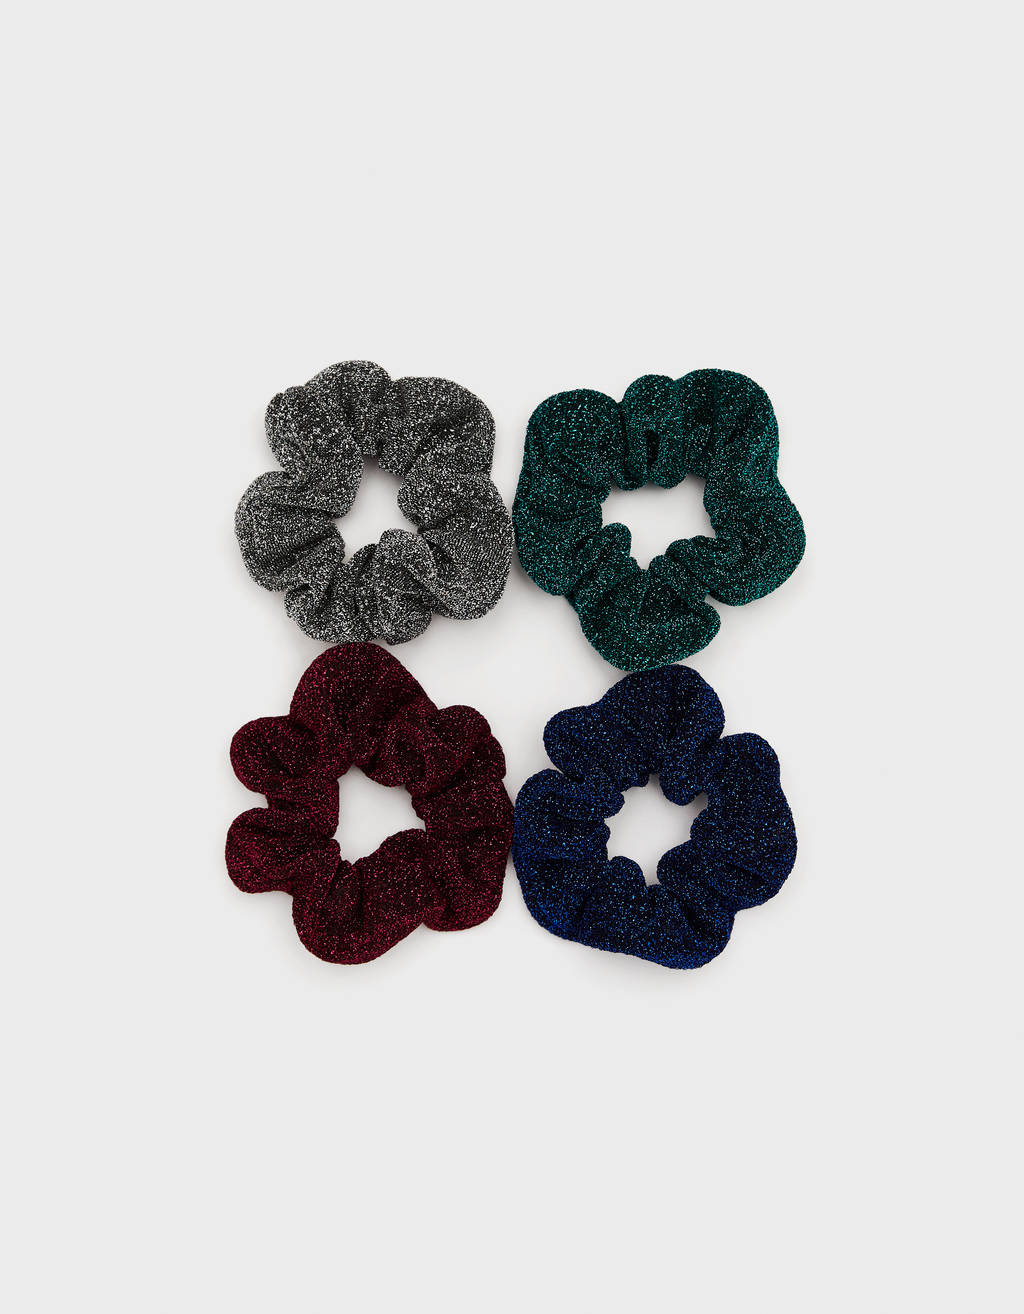 Pack of scrunchies with metallic thread